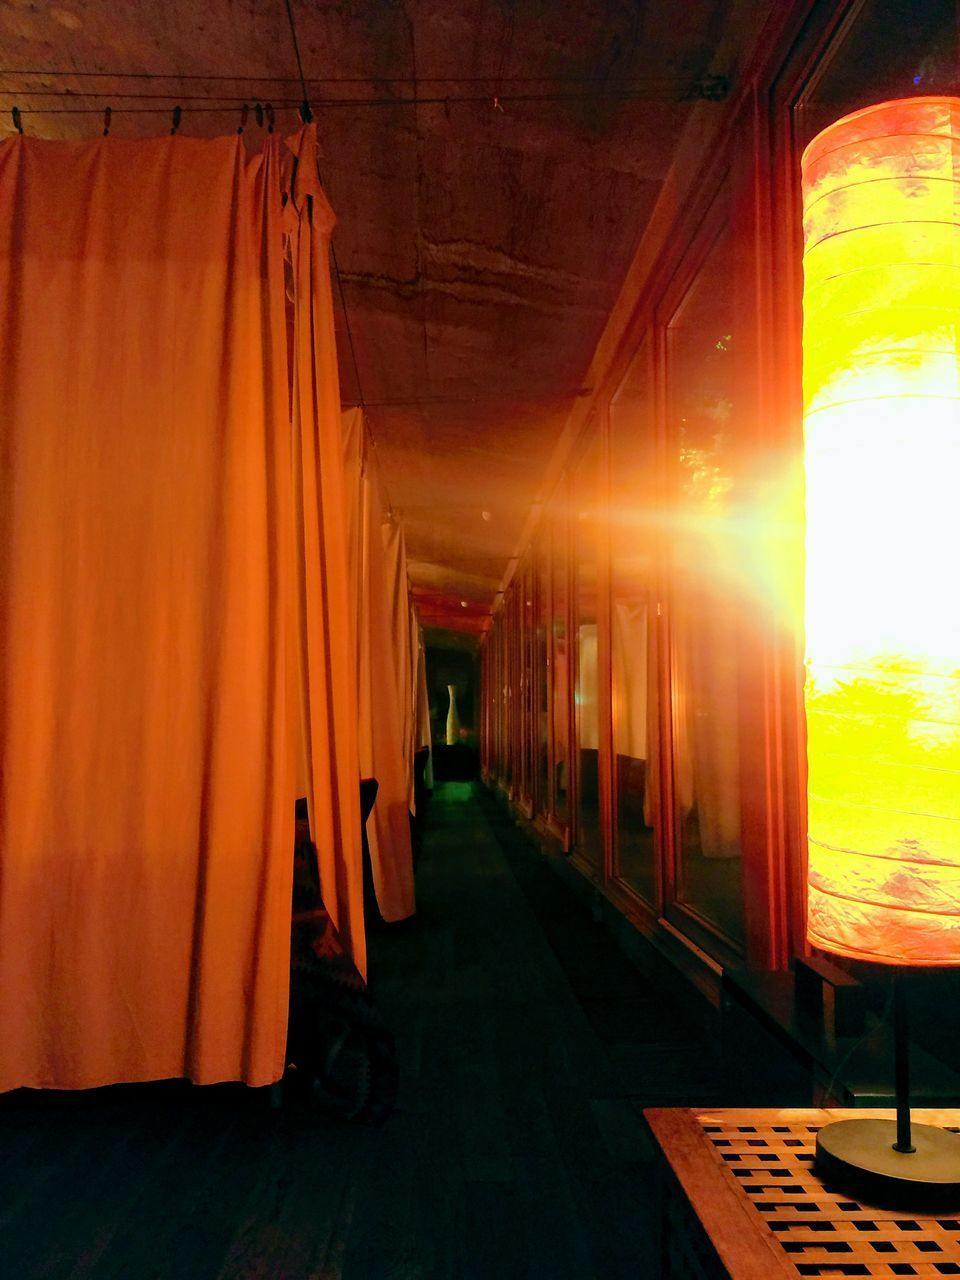 CORRIDOR OF BUILDING AT SUNSET